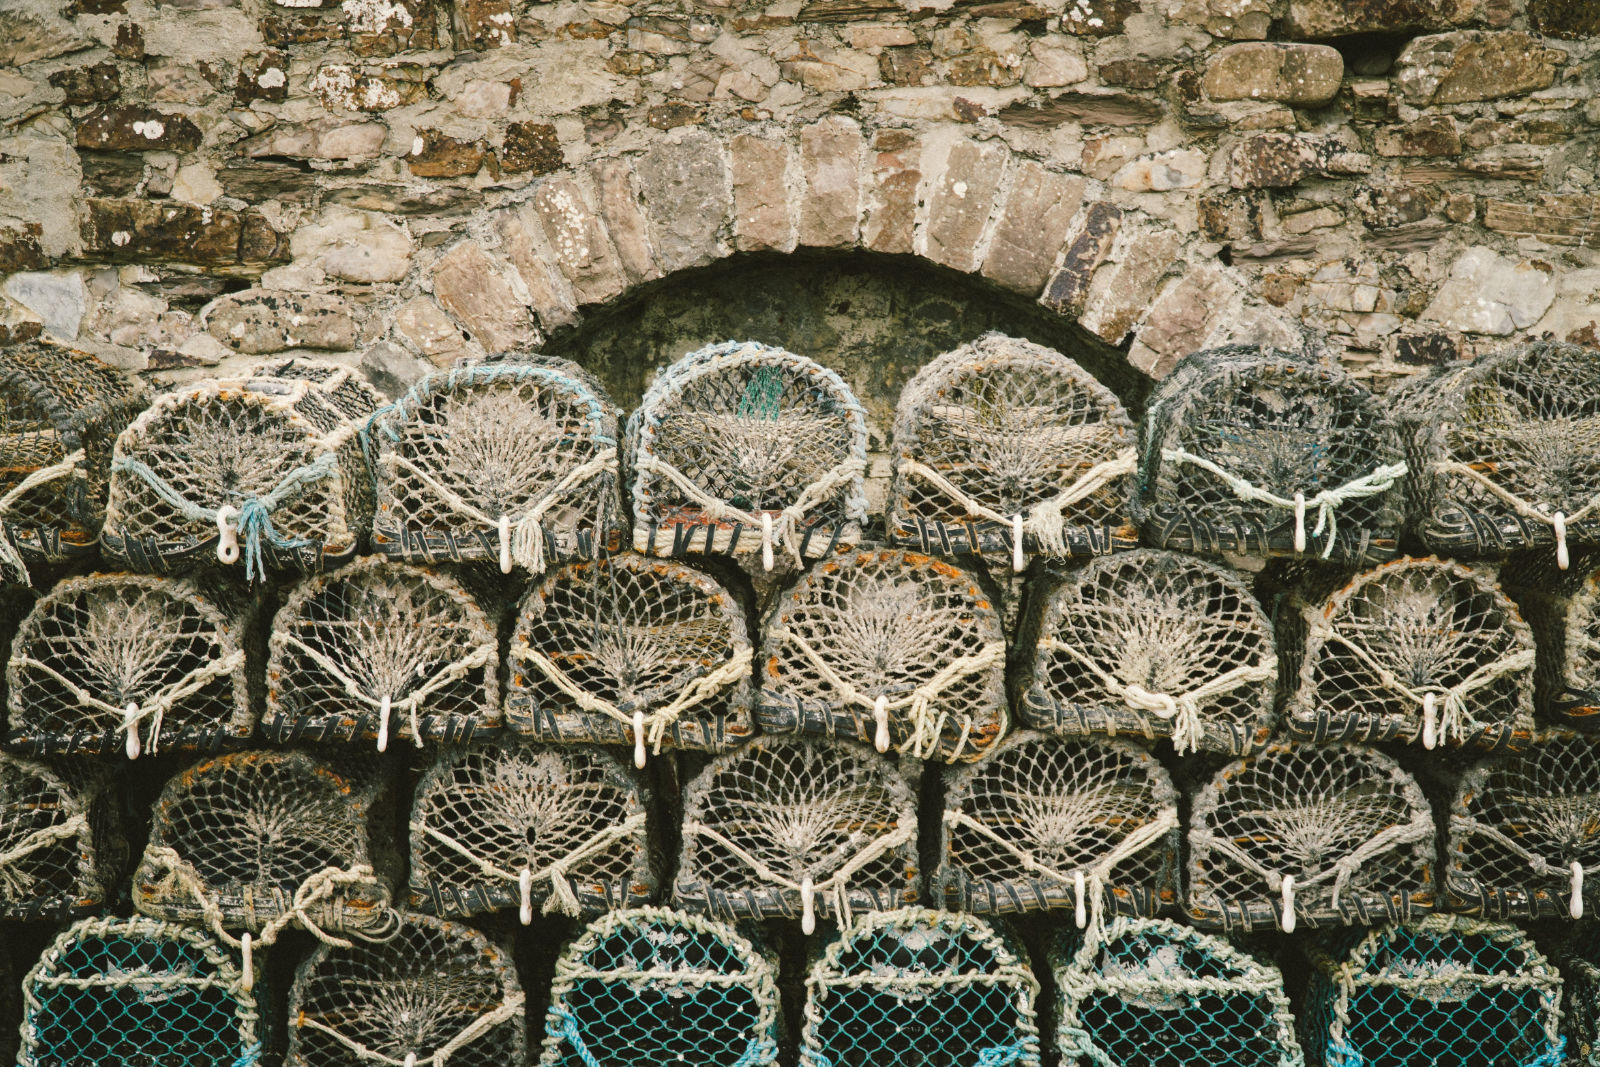 Cornish Lobster Pots